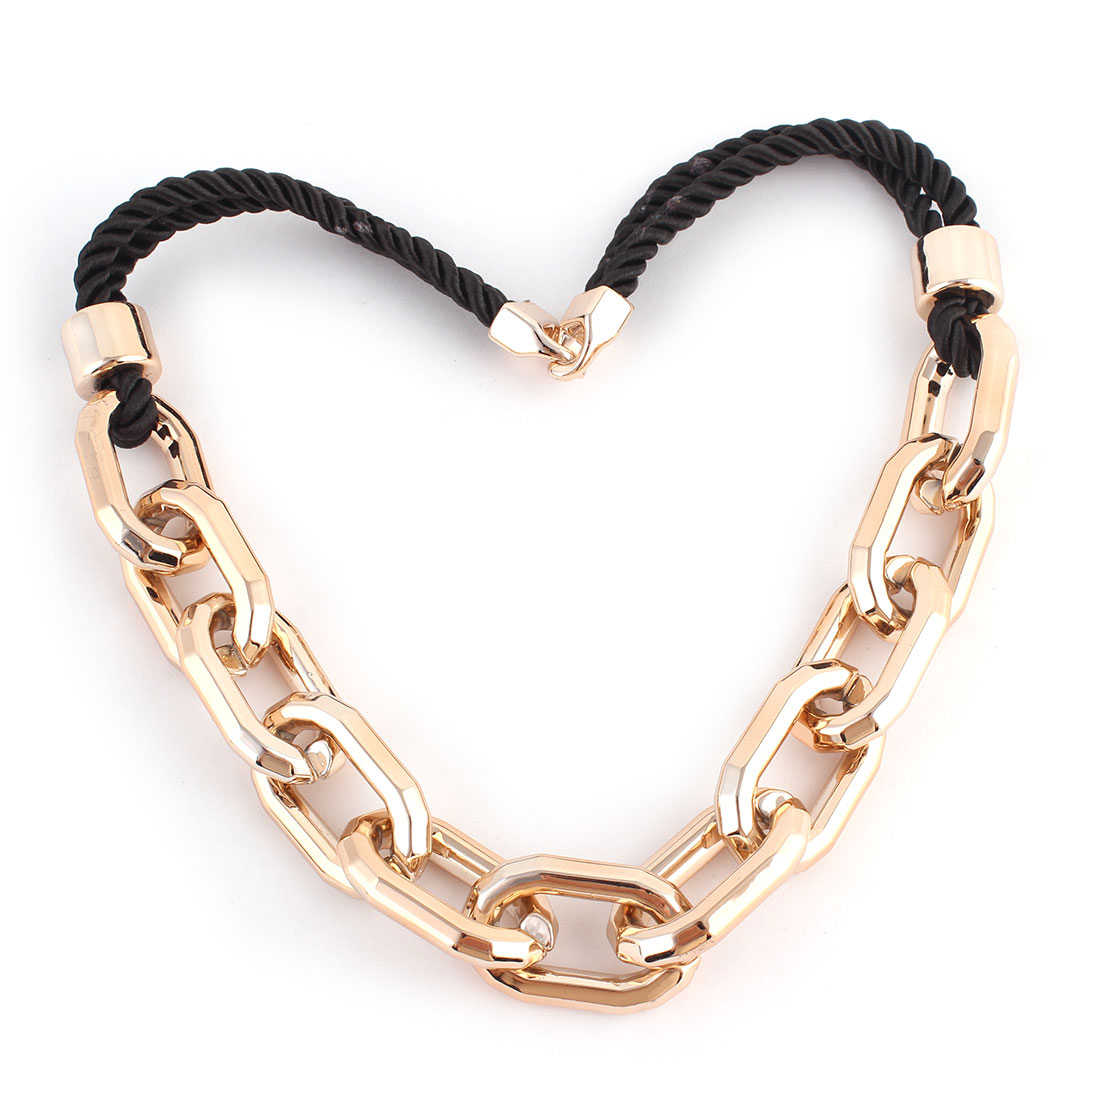 Lady Oval Shaped Pendant Sweater Dress Necklace Chain Gold Tone Black